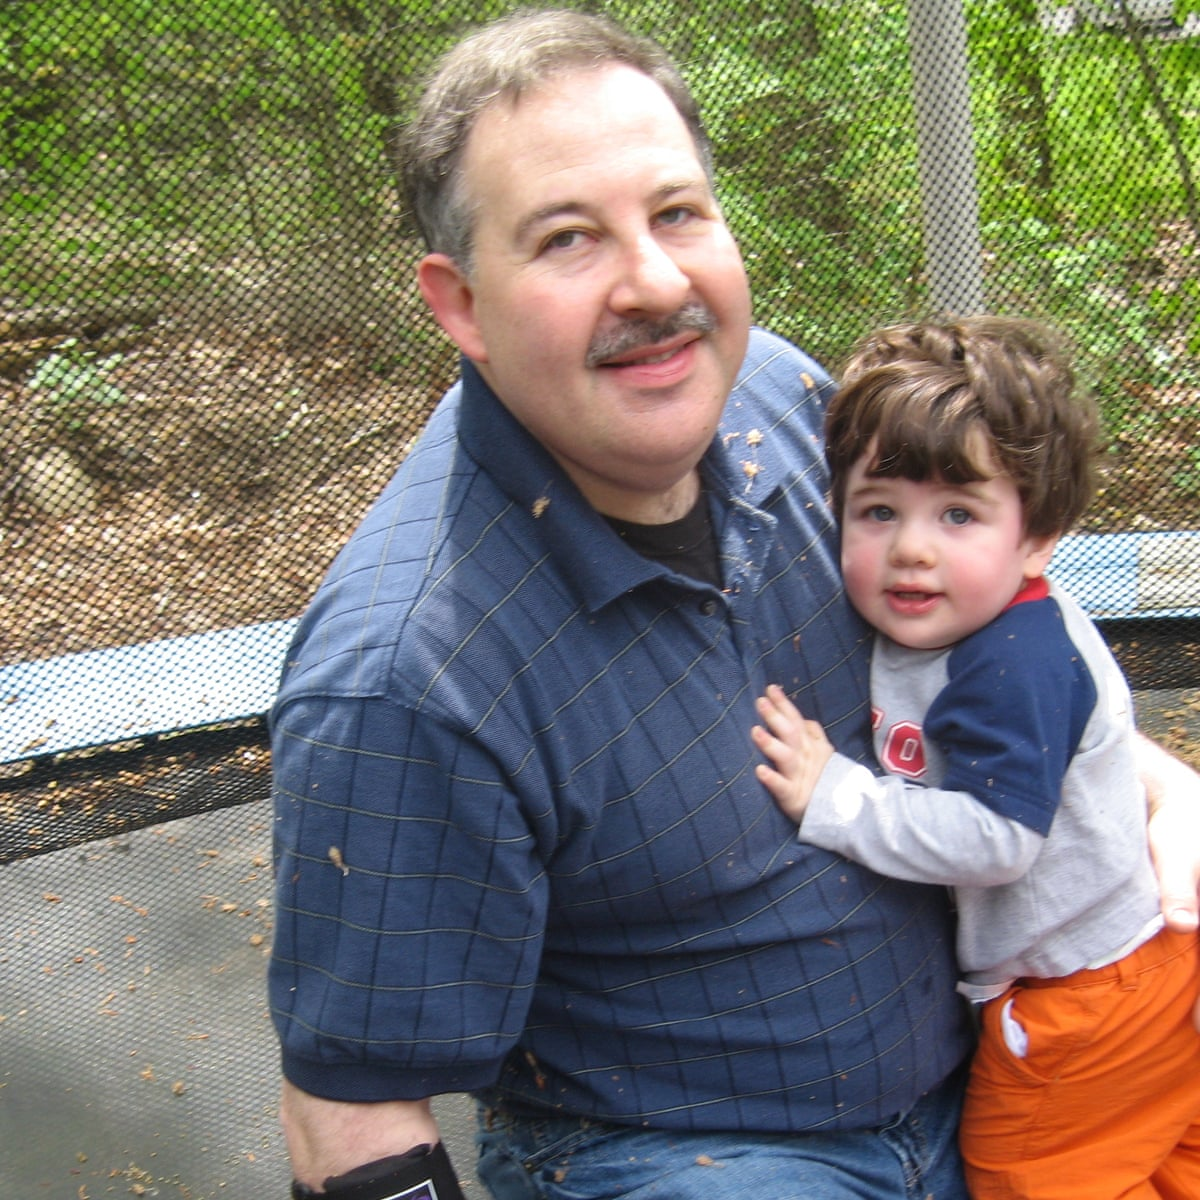 Sandy Hook Father Leonard Pozner On Death Threats I Never